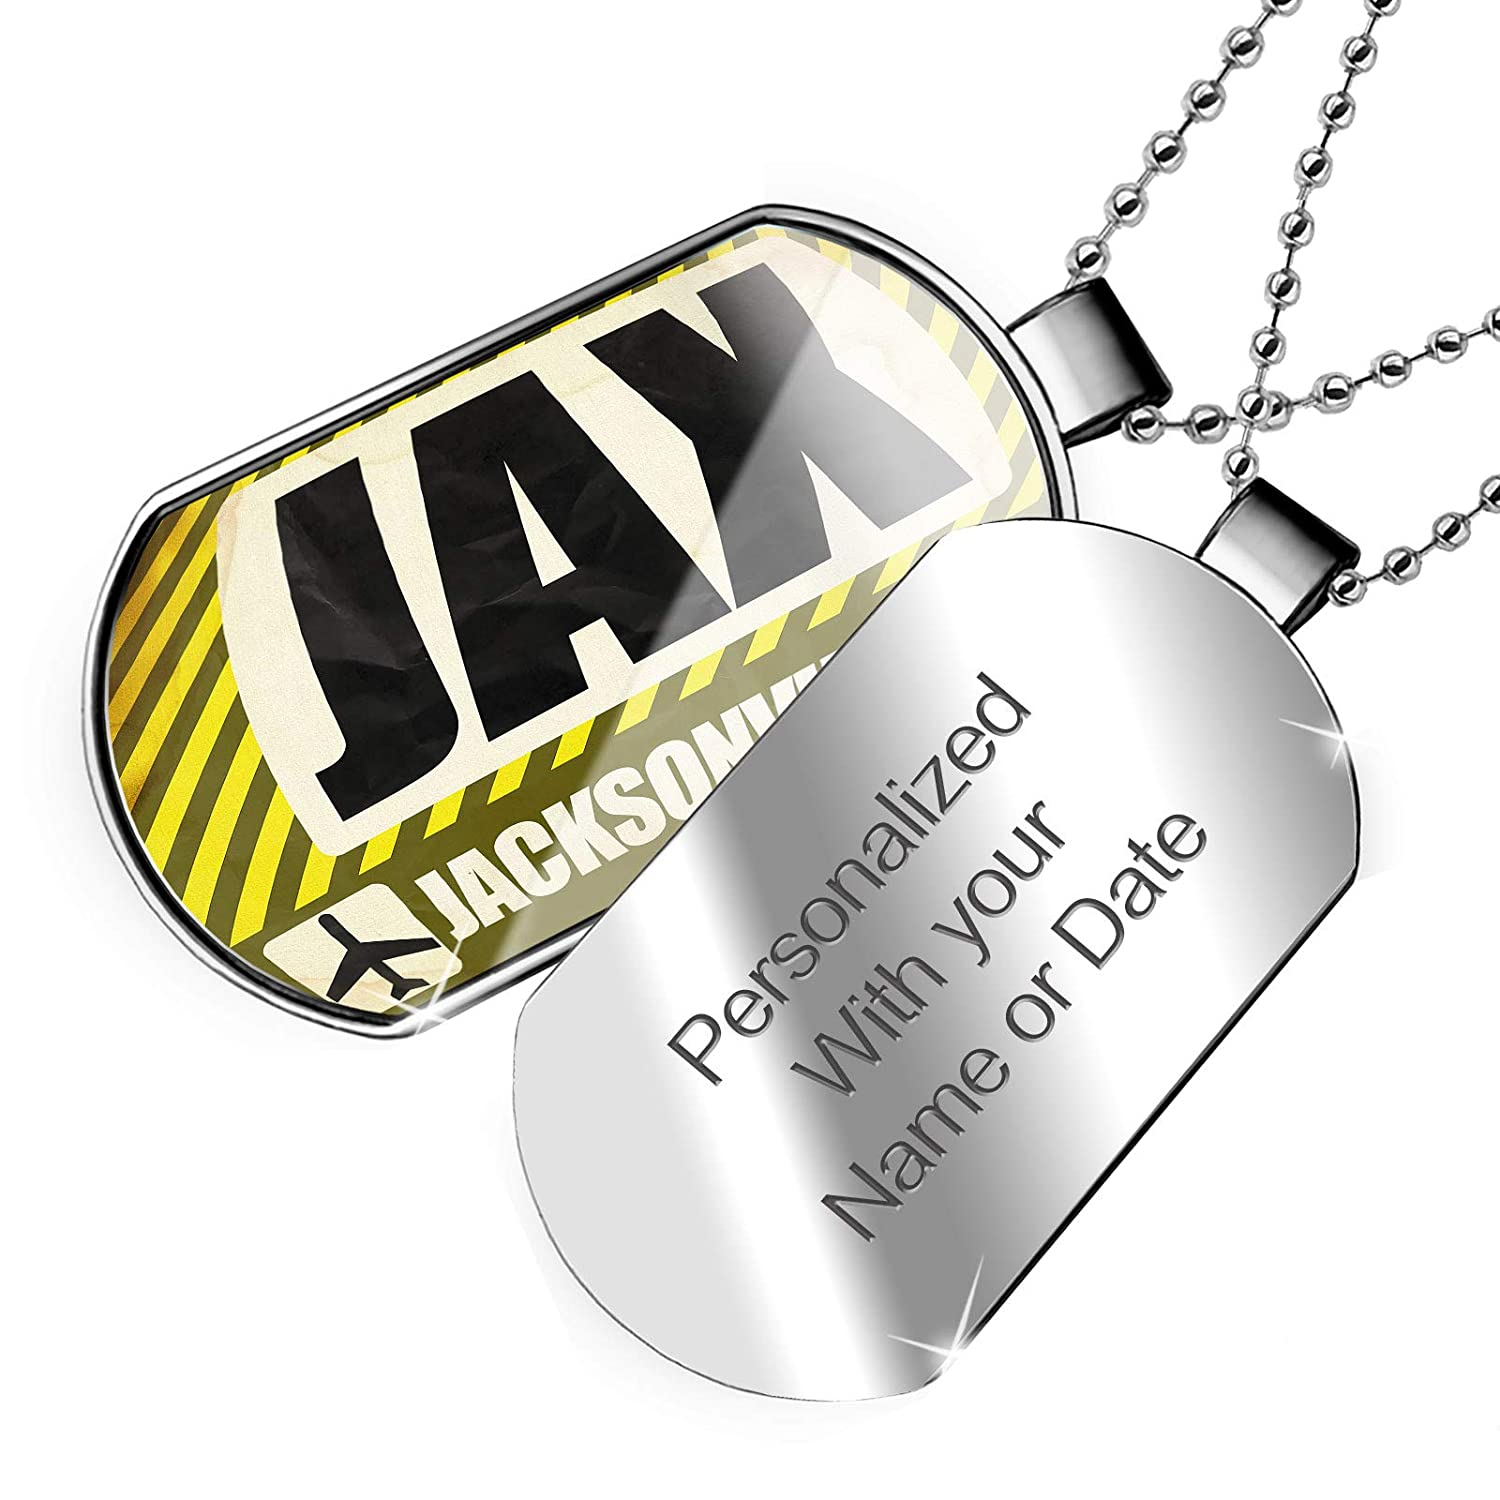 FL Dogtag Necklace NEONBLOND Personalized Name Engraved Airportcode Jax Jacksonville